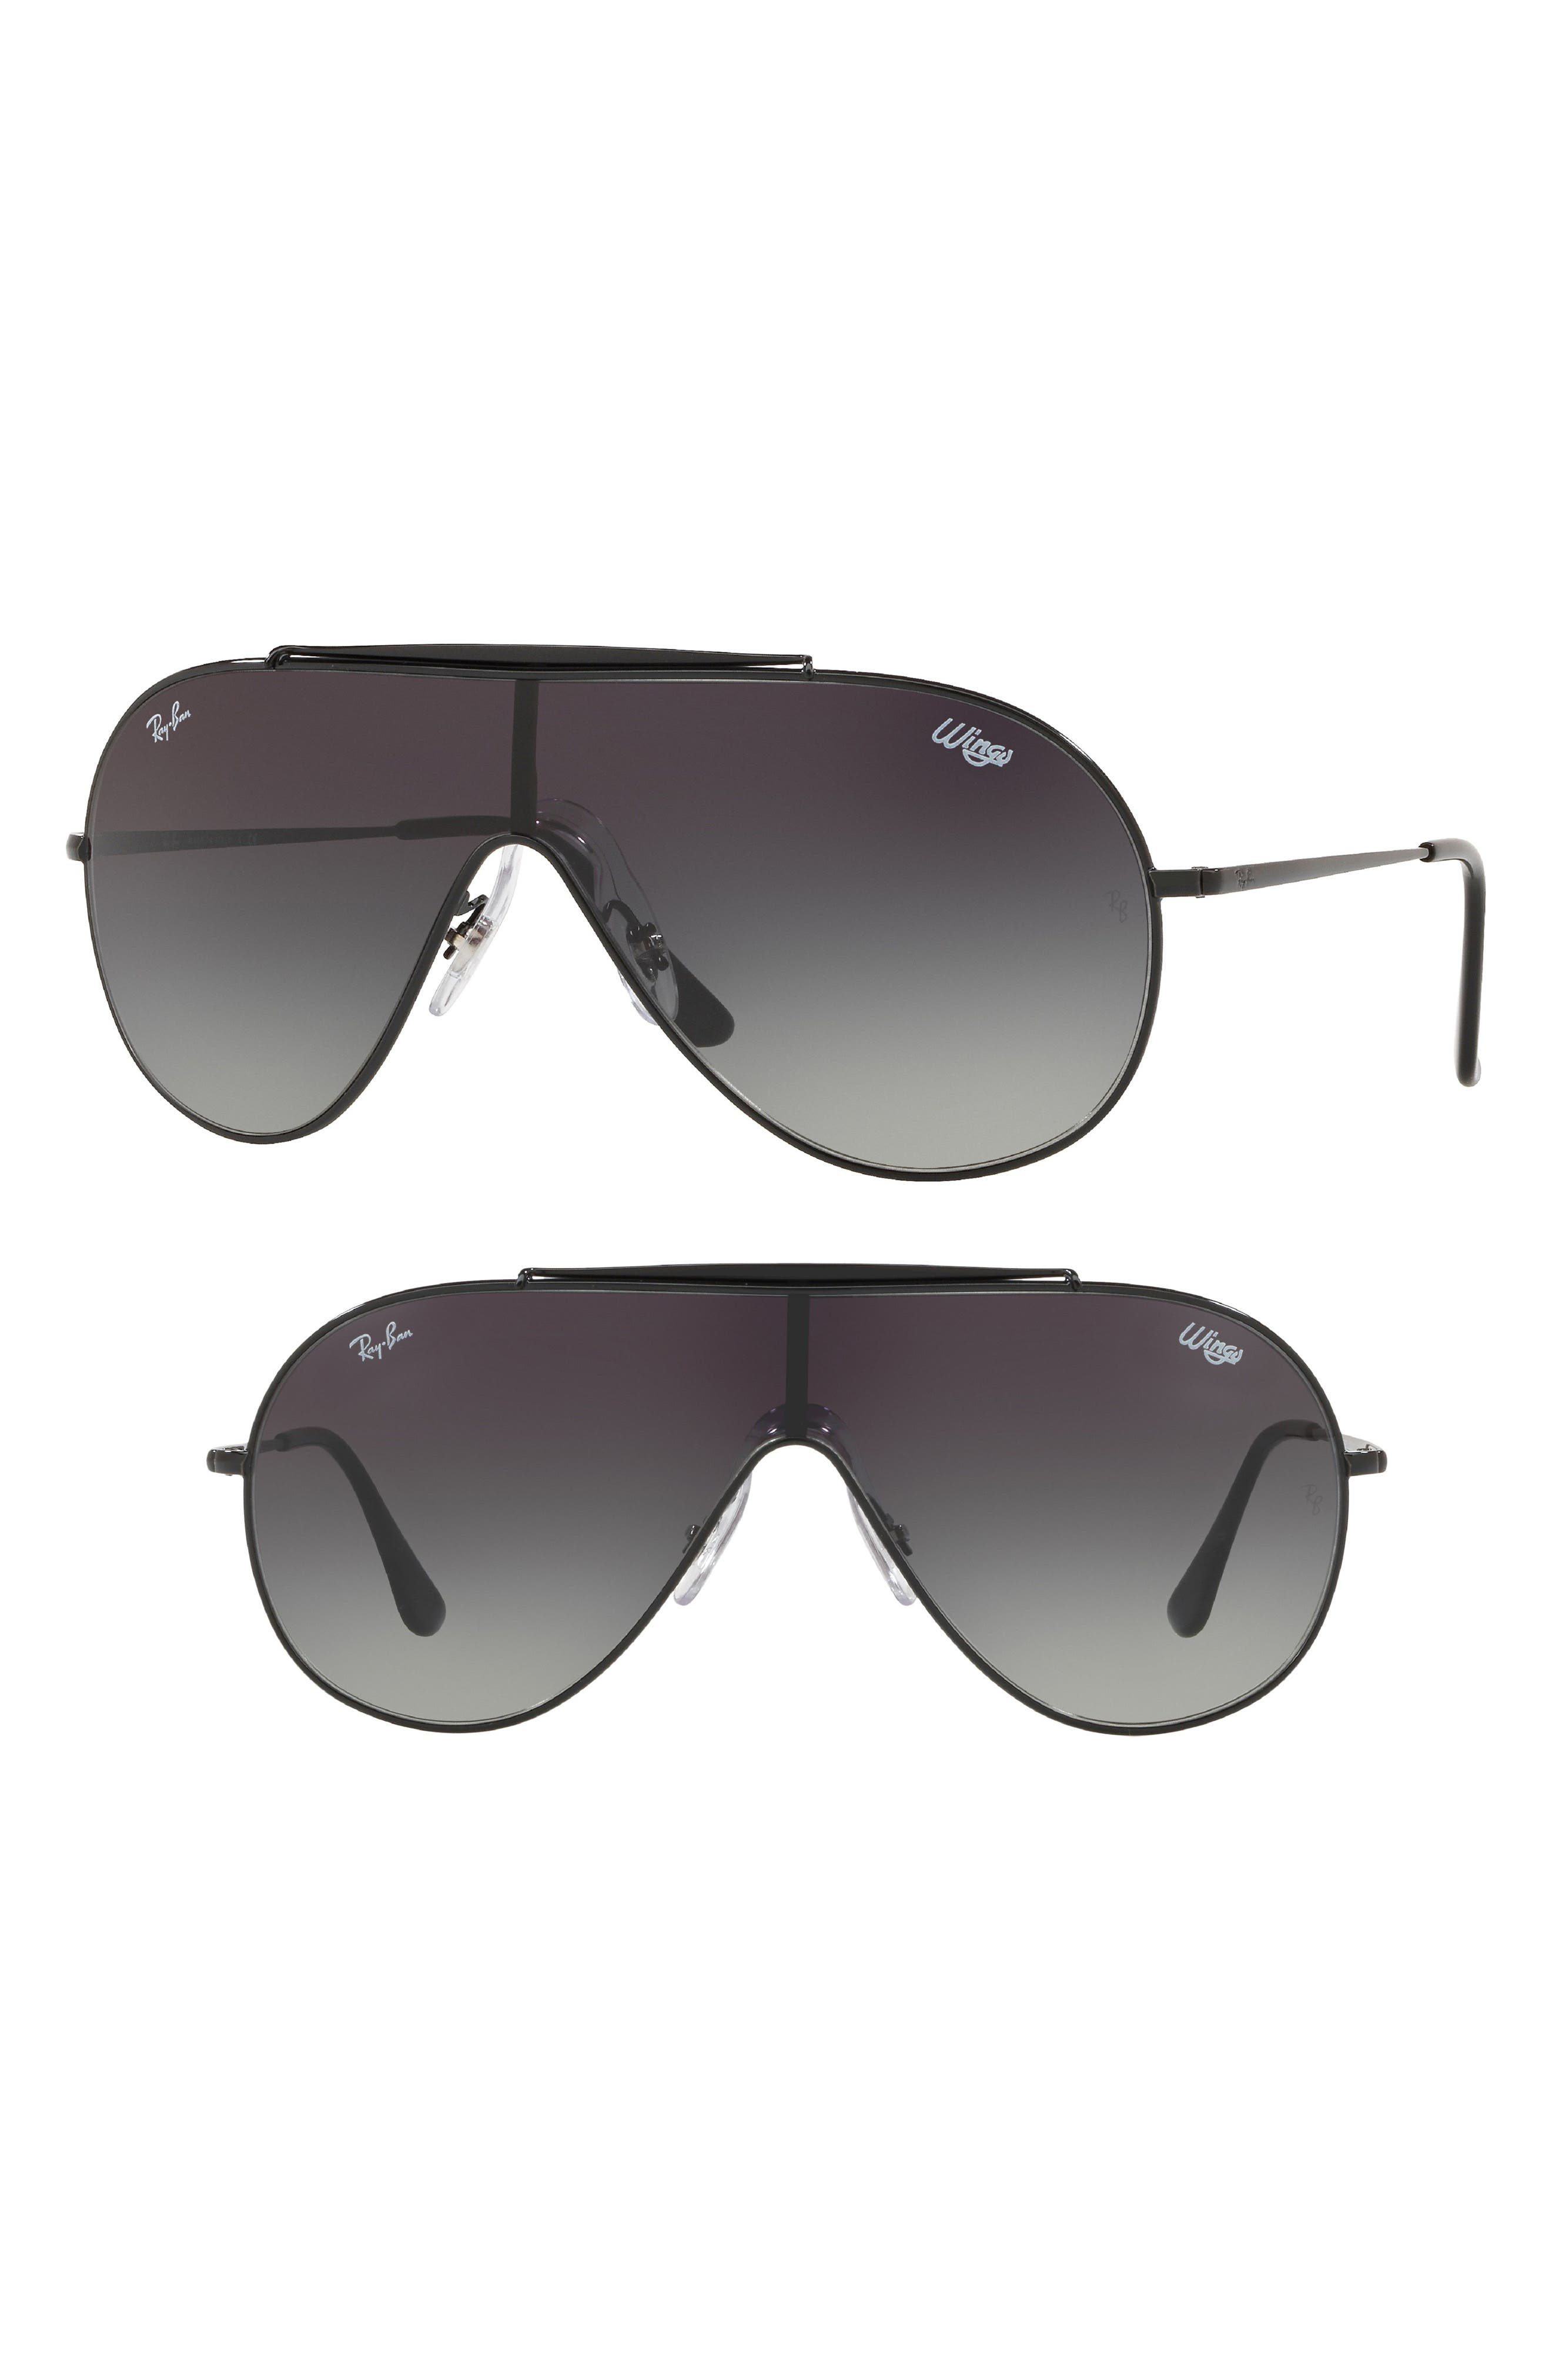 133mm Shield Sunglasses,                         Main,                         color, 001